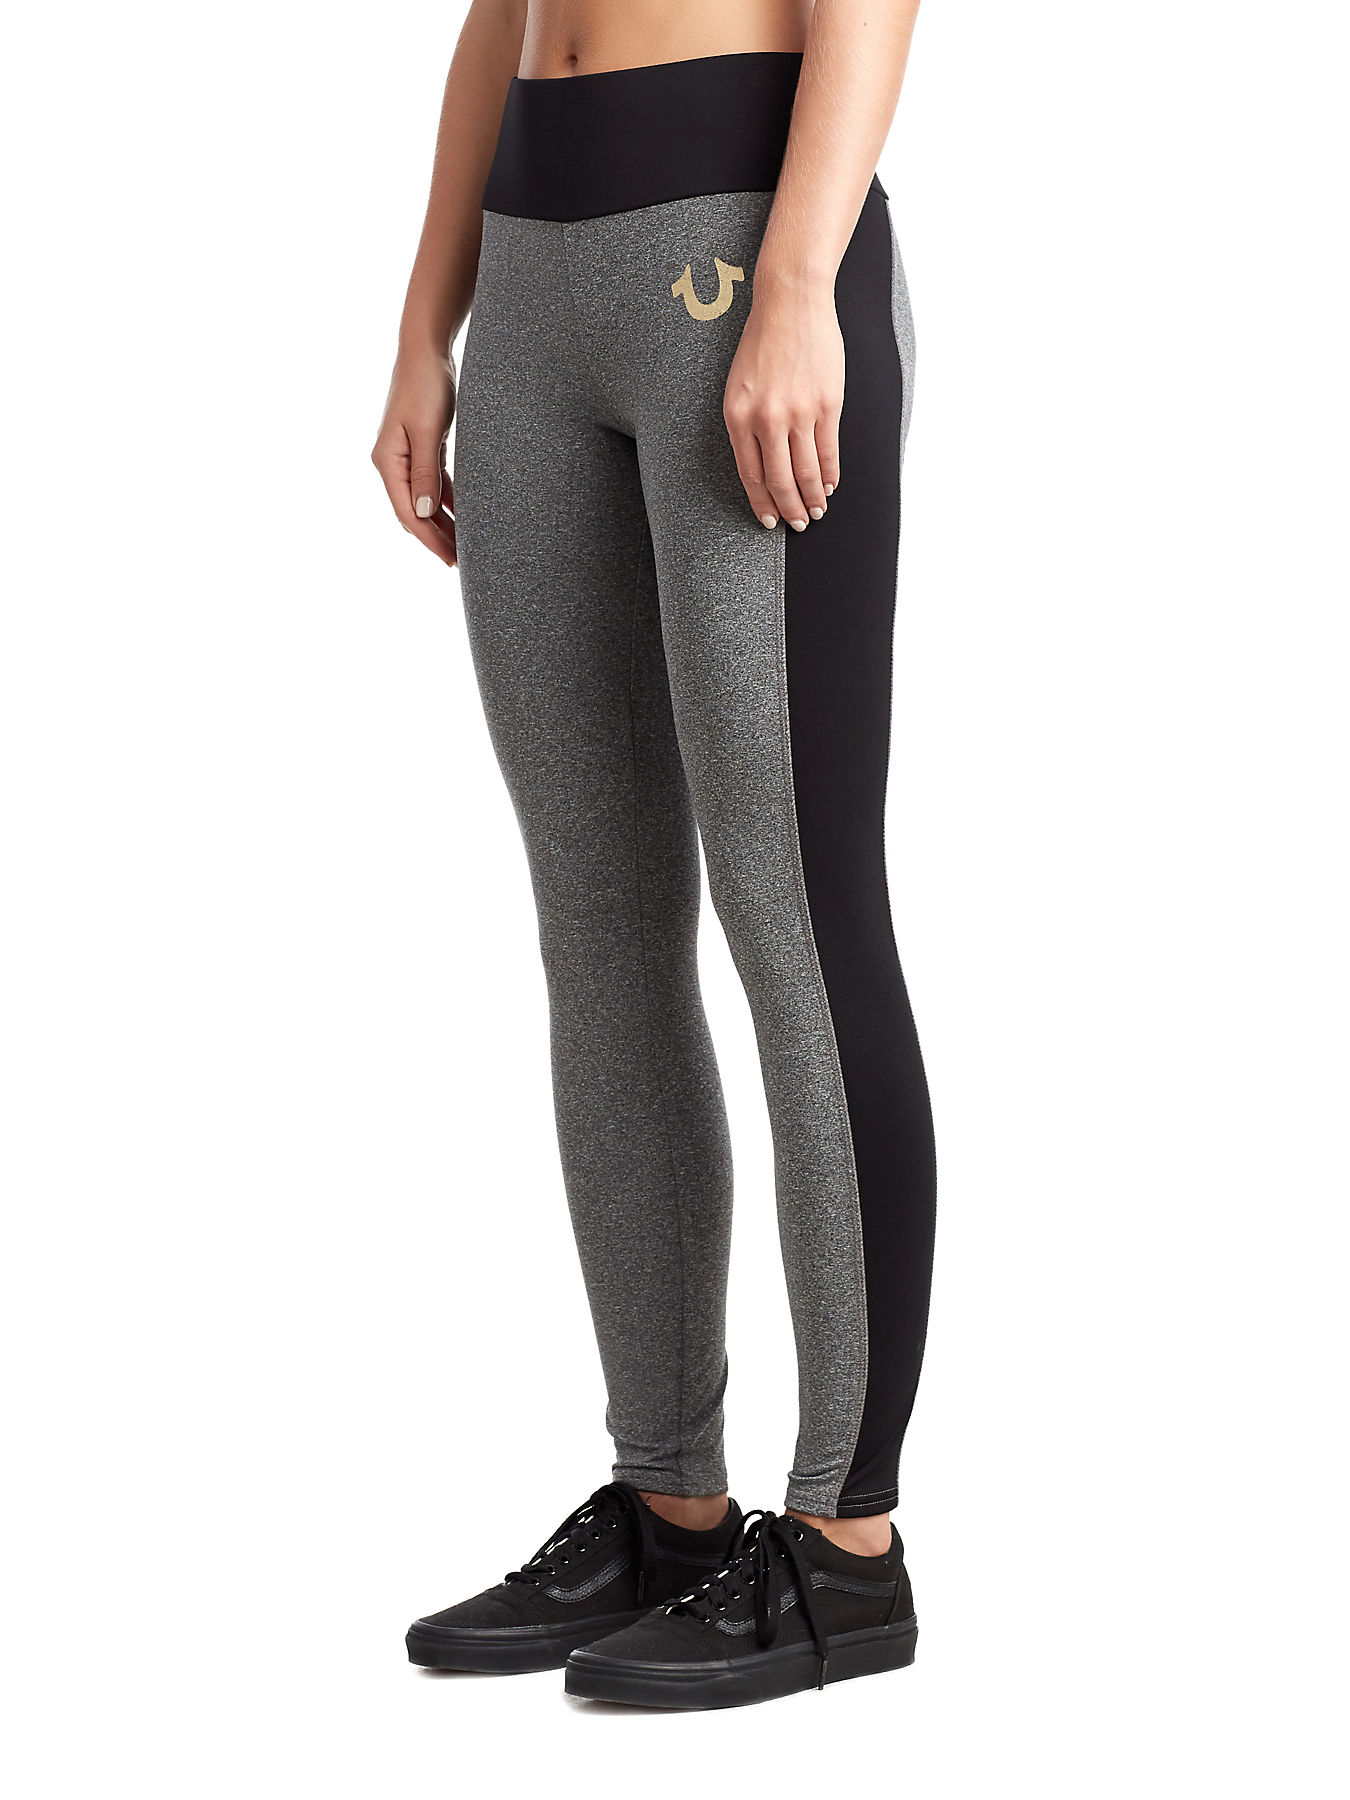 c02b30f736b7a WOMENS HIGH WAIST METALLIC LOGO LEGGING